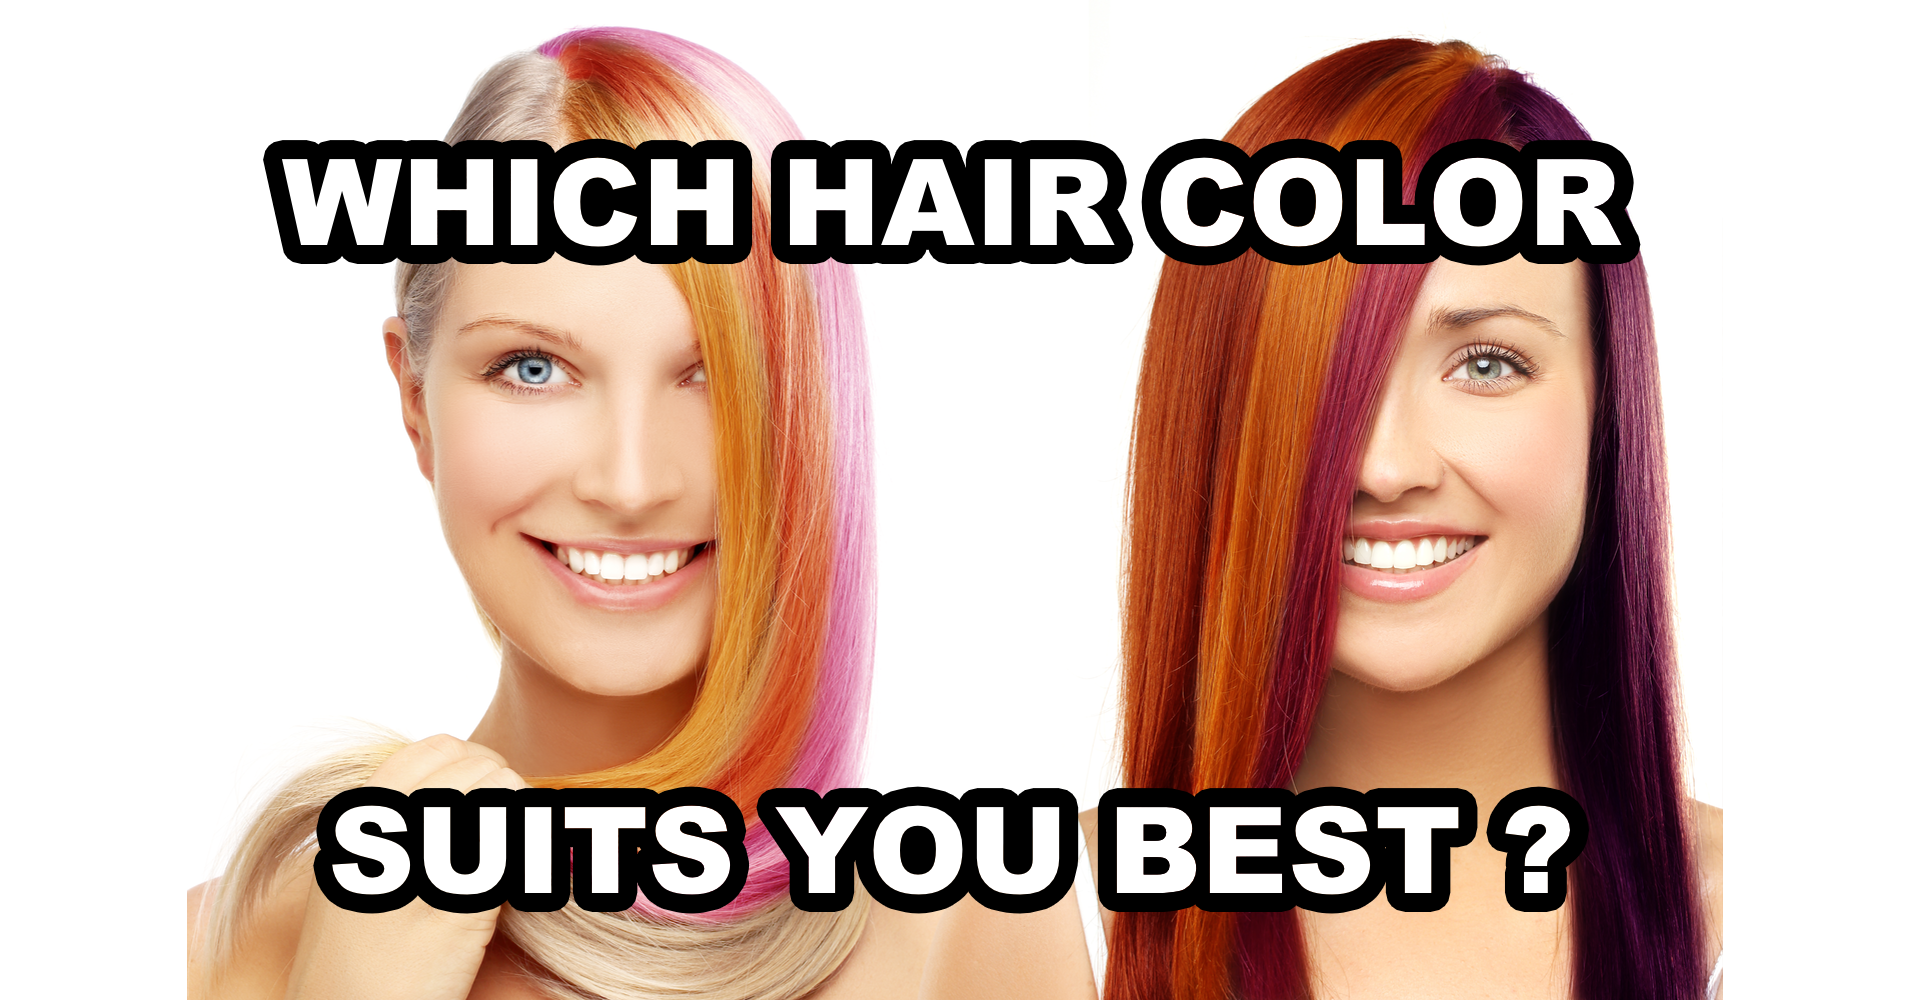 white boy hairstyles : Which Hair Color Suits You Best? - Quiz - Quizony.com